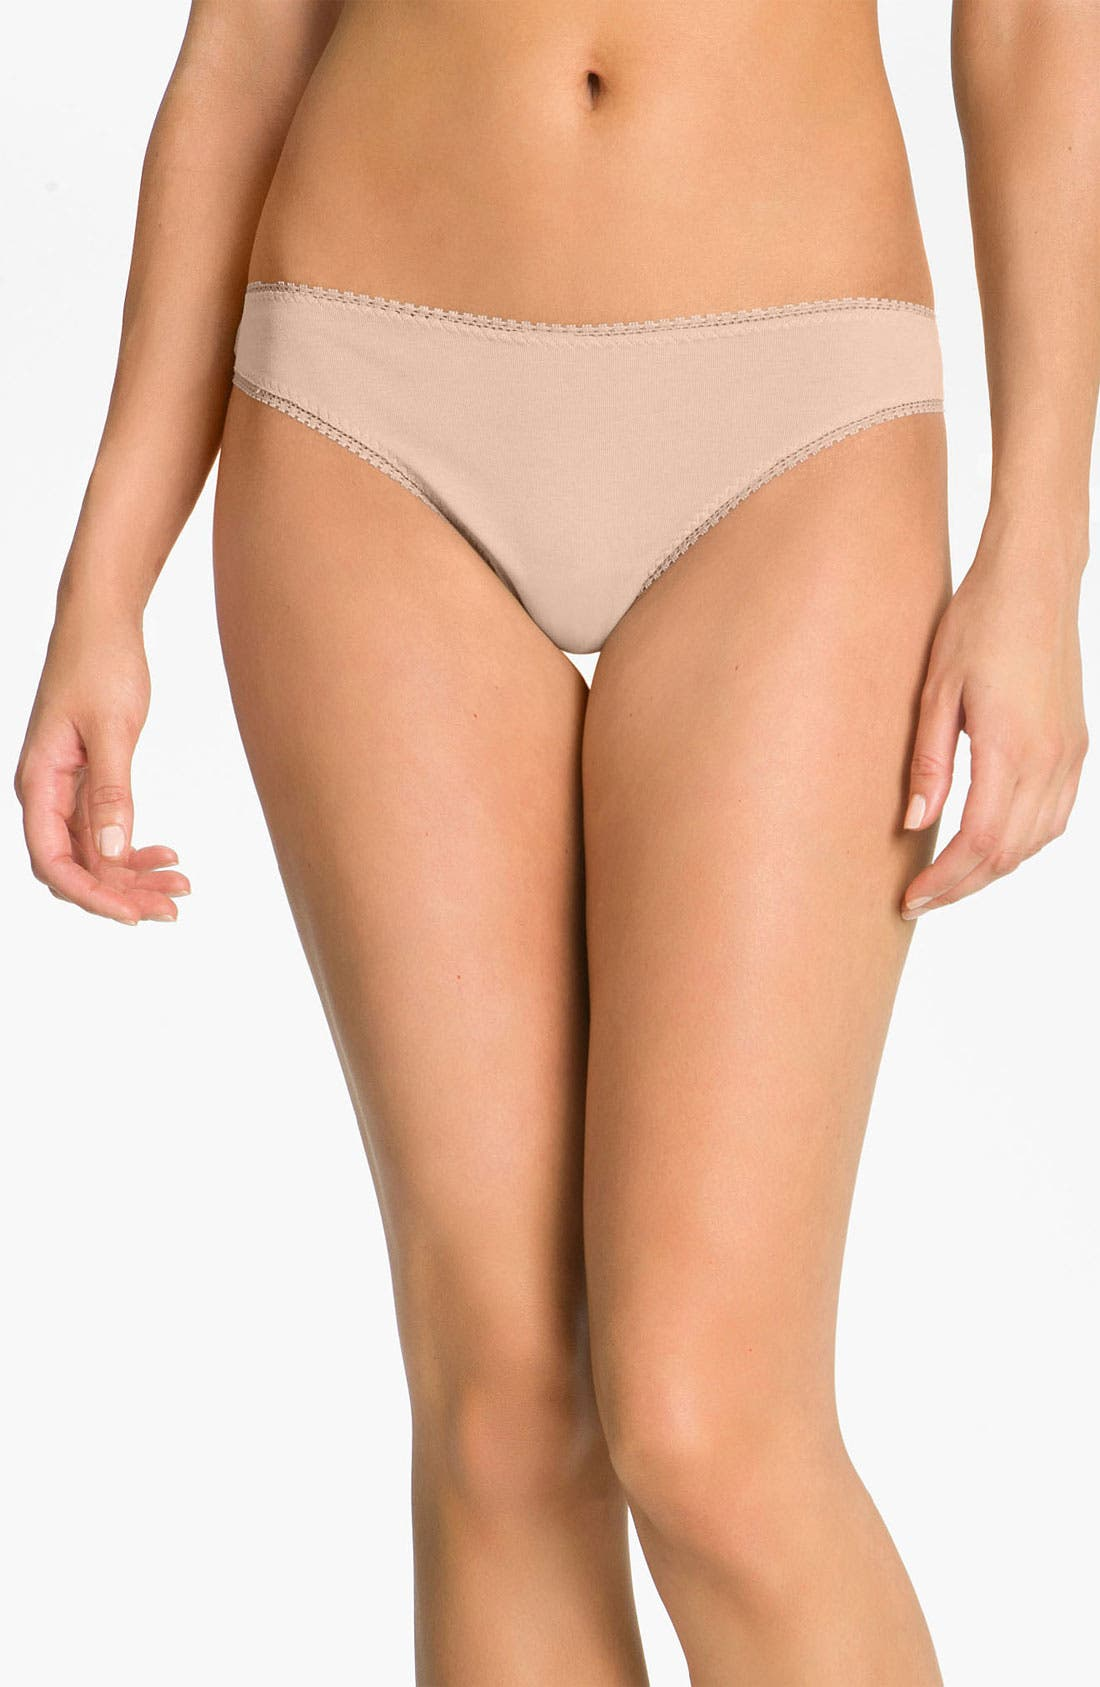 ONGOSSAMER Cabana Cotton Stretch Hip G-String in Champagne